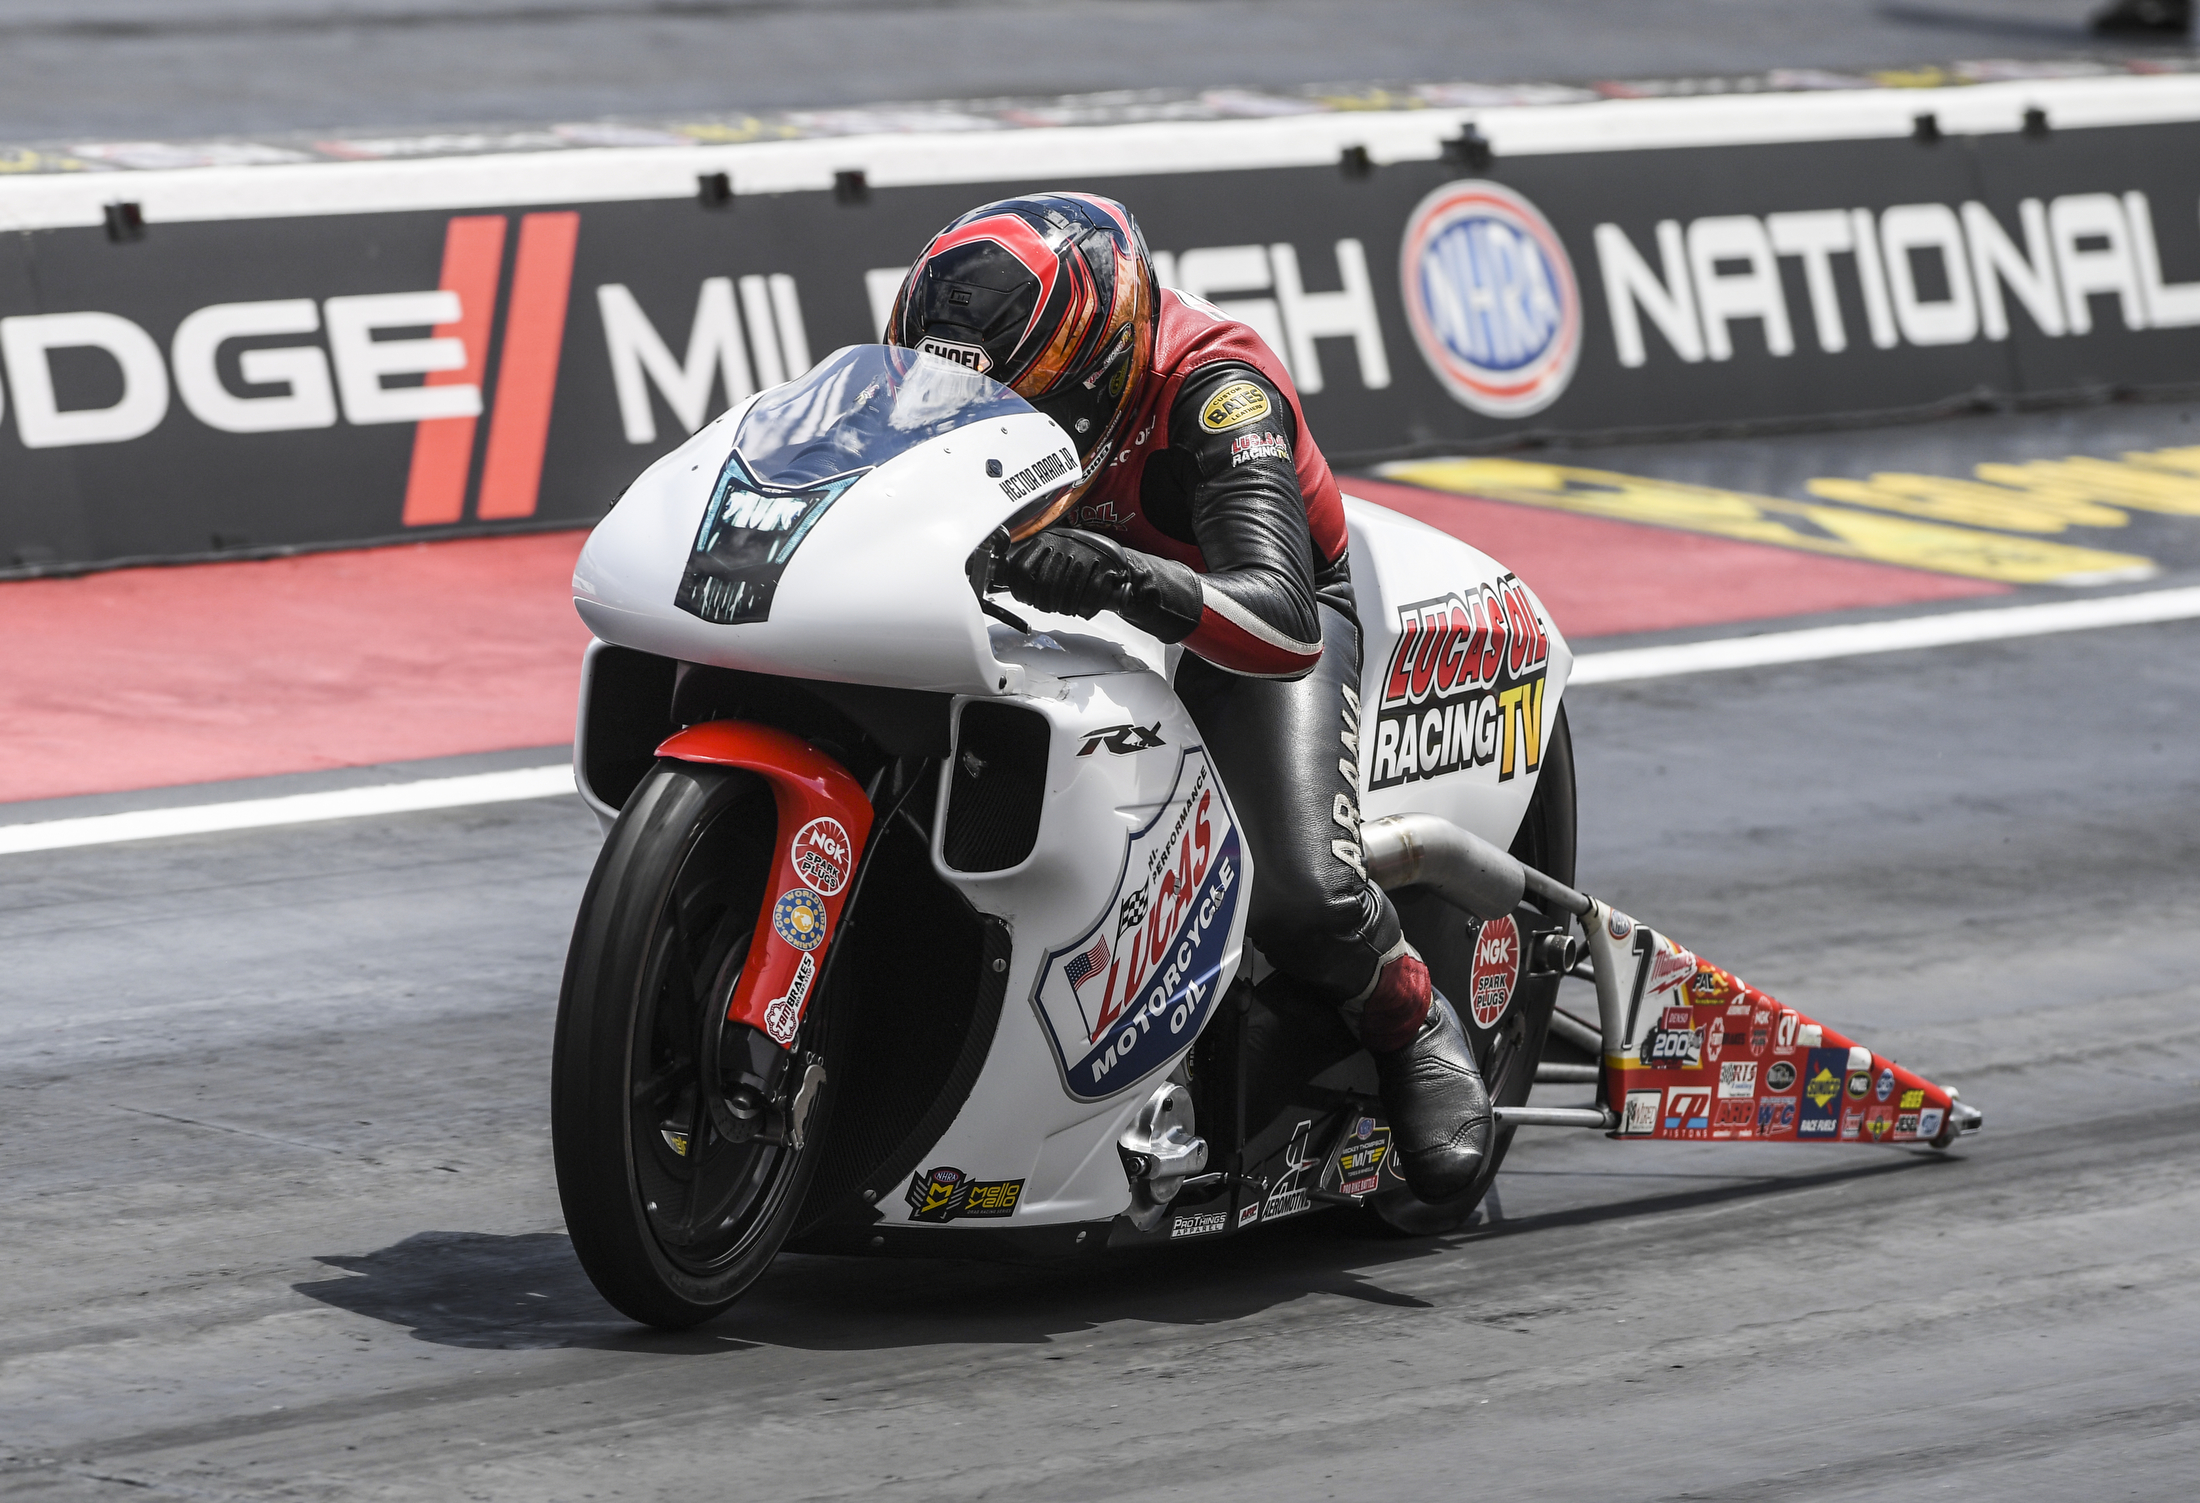 Pro Stock Motorcycle rider Hector Arana Jr. racing on Sunday at the Mopar Mile-High Nationals